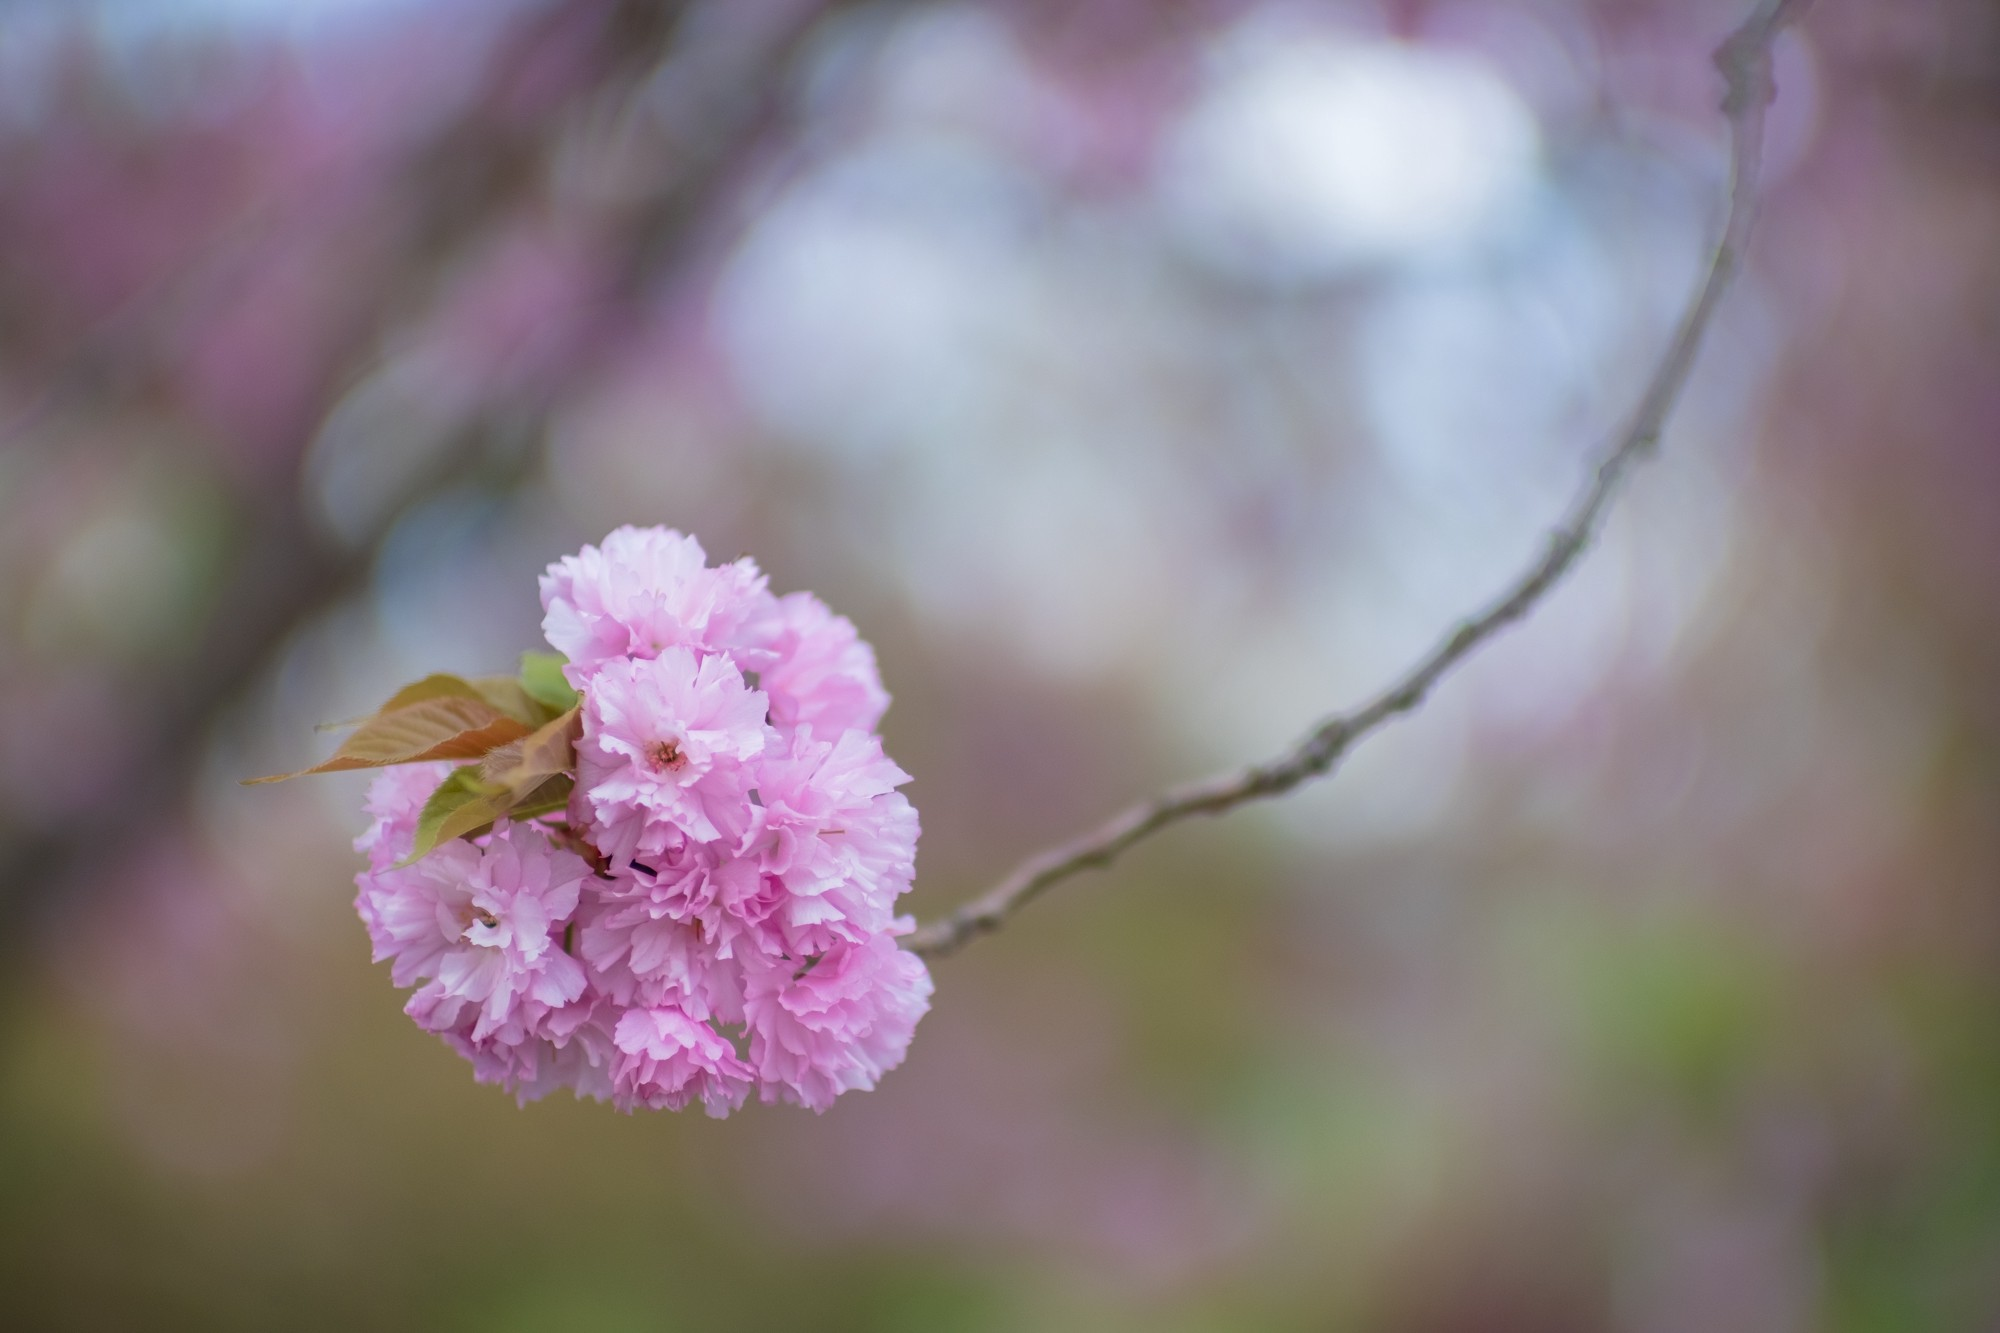 A cherry blossom on a bare branch.